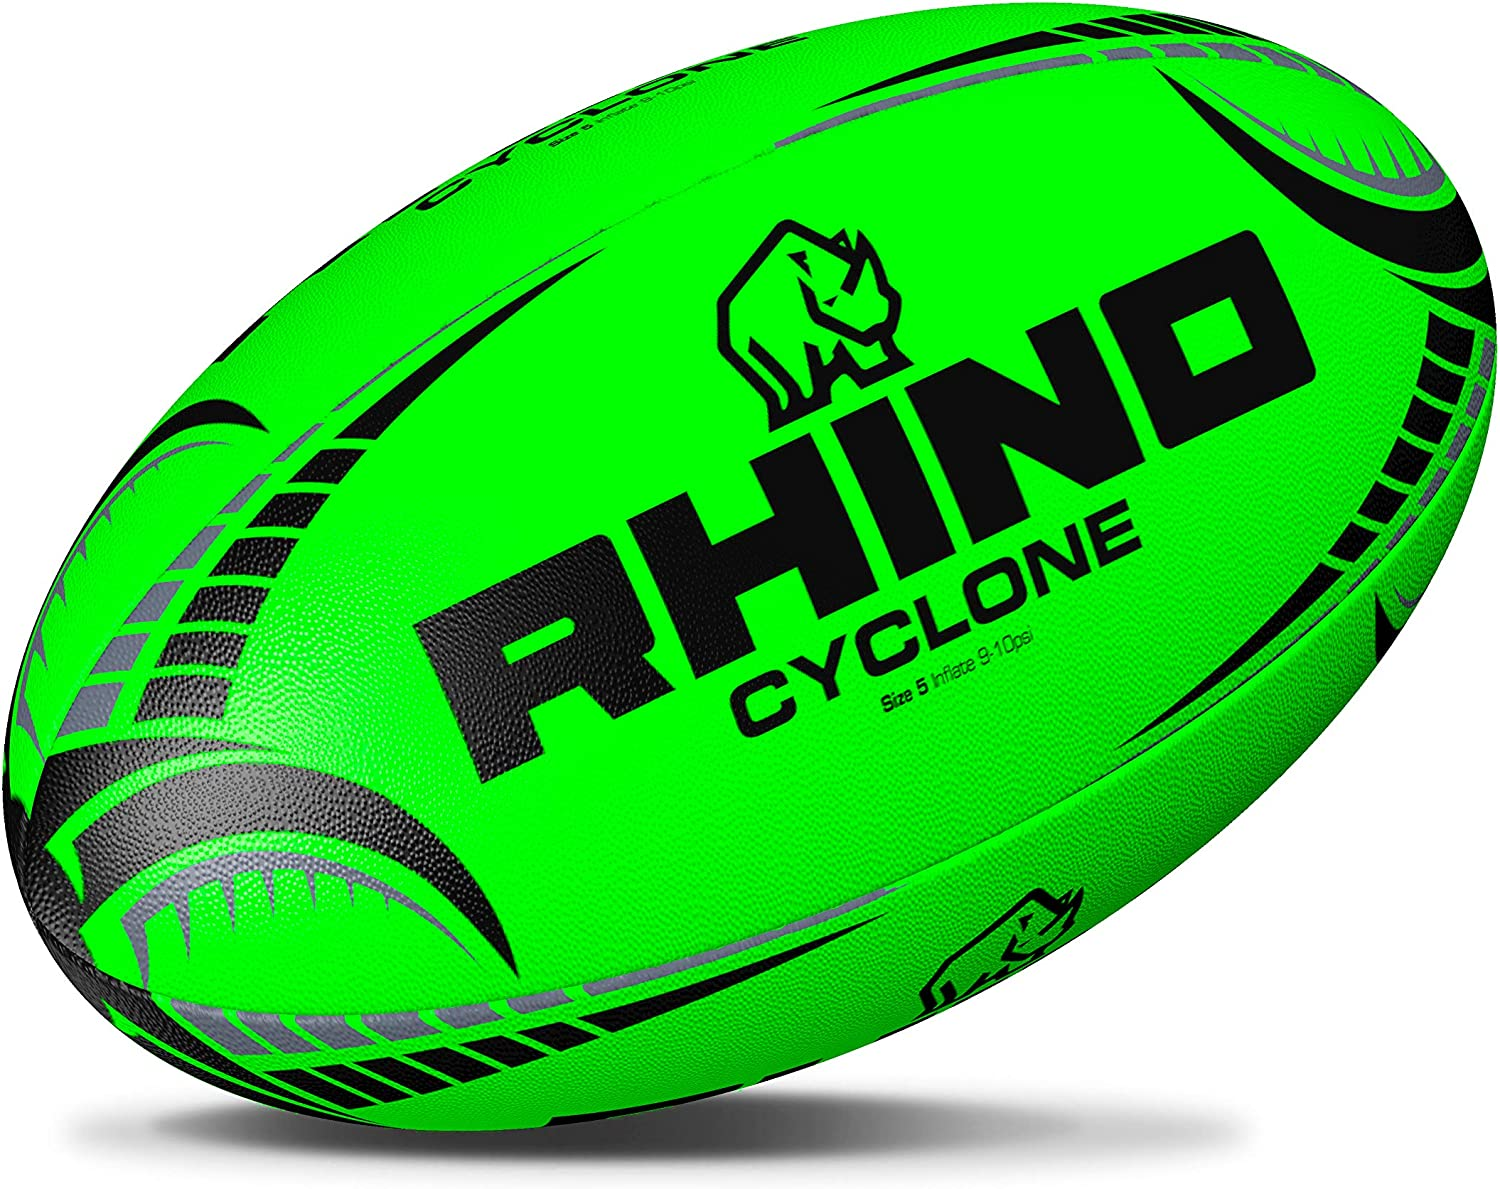 RHINO RUGBY Cyclone Practice Balls